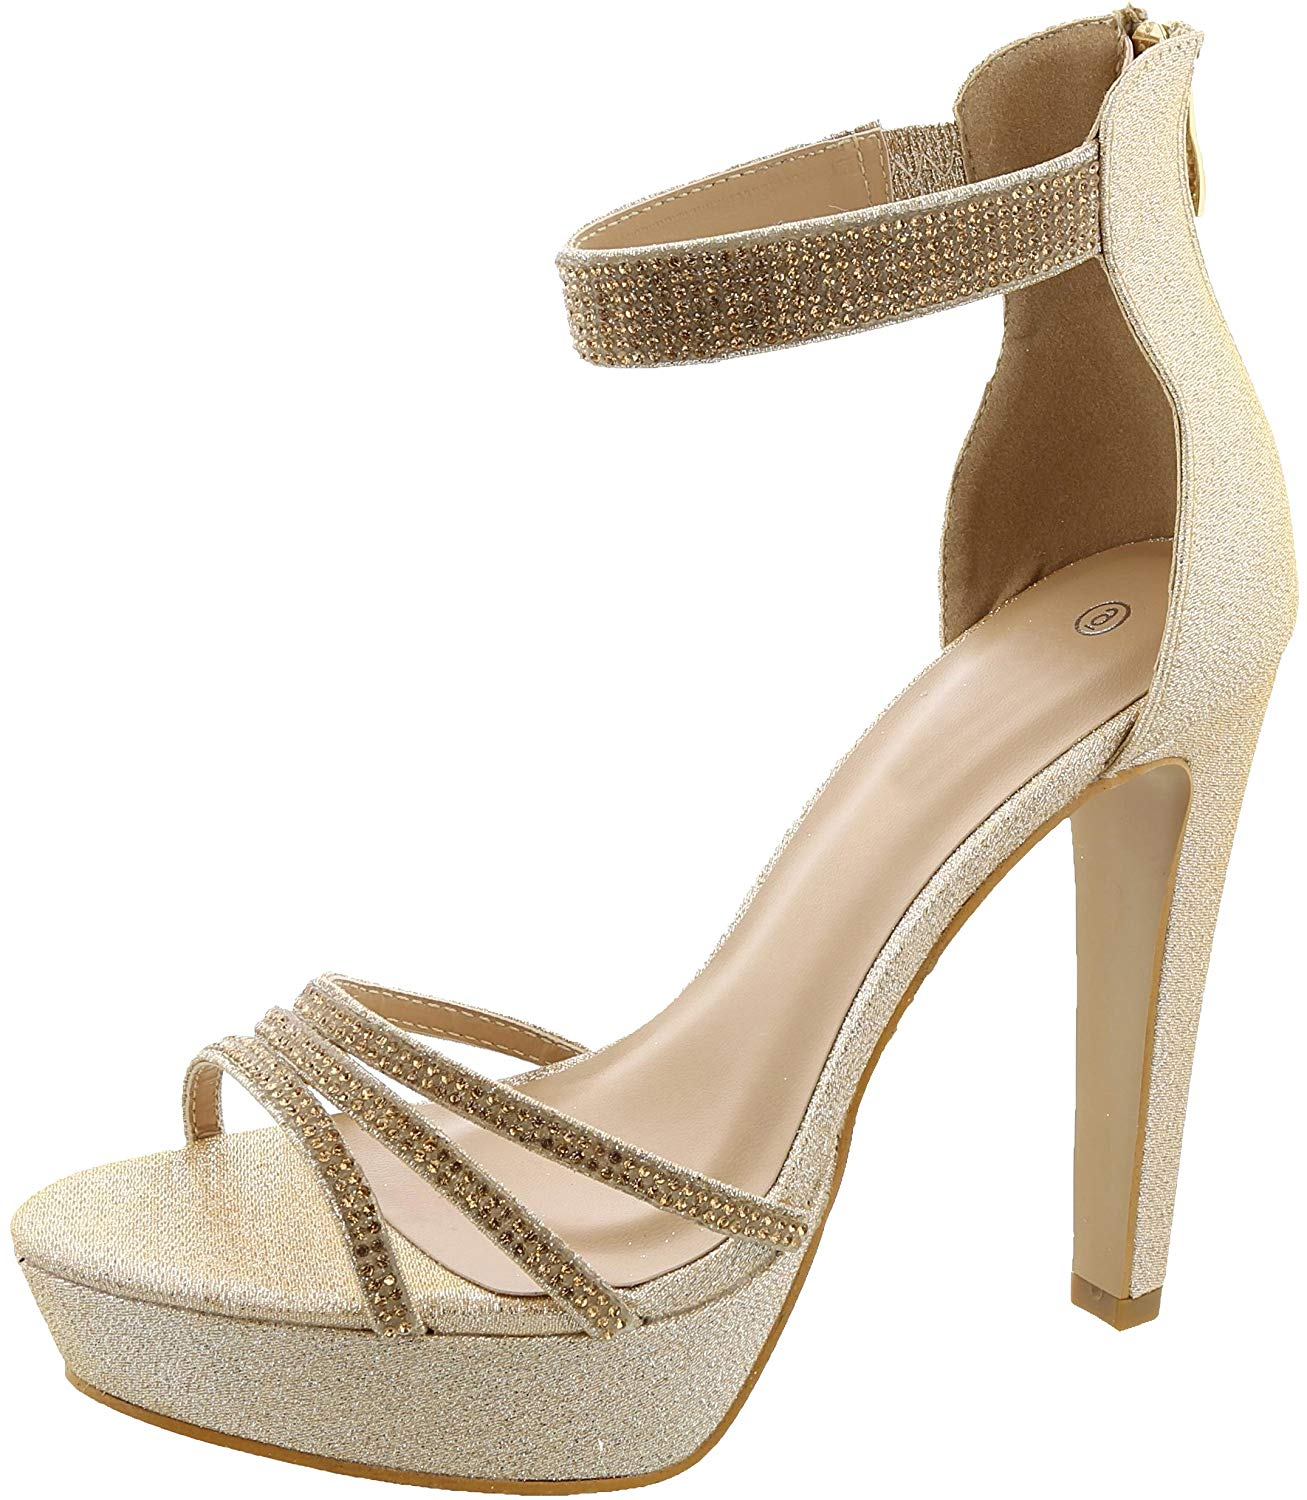 0d12c9bf6e9 Get Quotations · Cambridge Select Women s Open Toe Crystal Rhinestone Ankle  Strappy Chunky Platform Tapered Heel Sandal